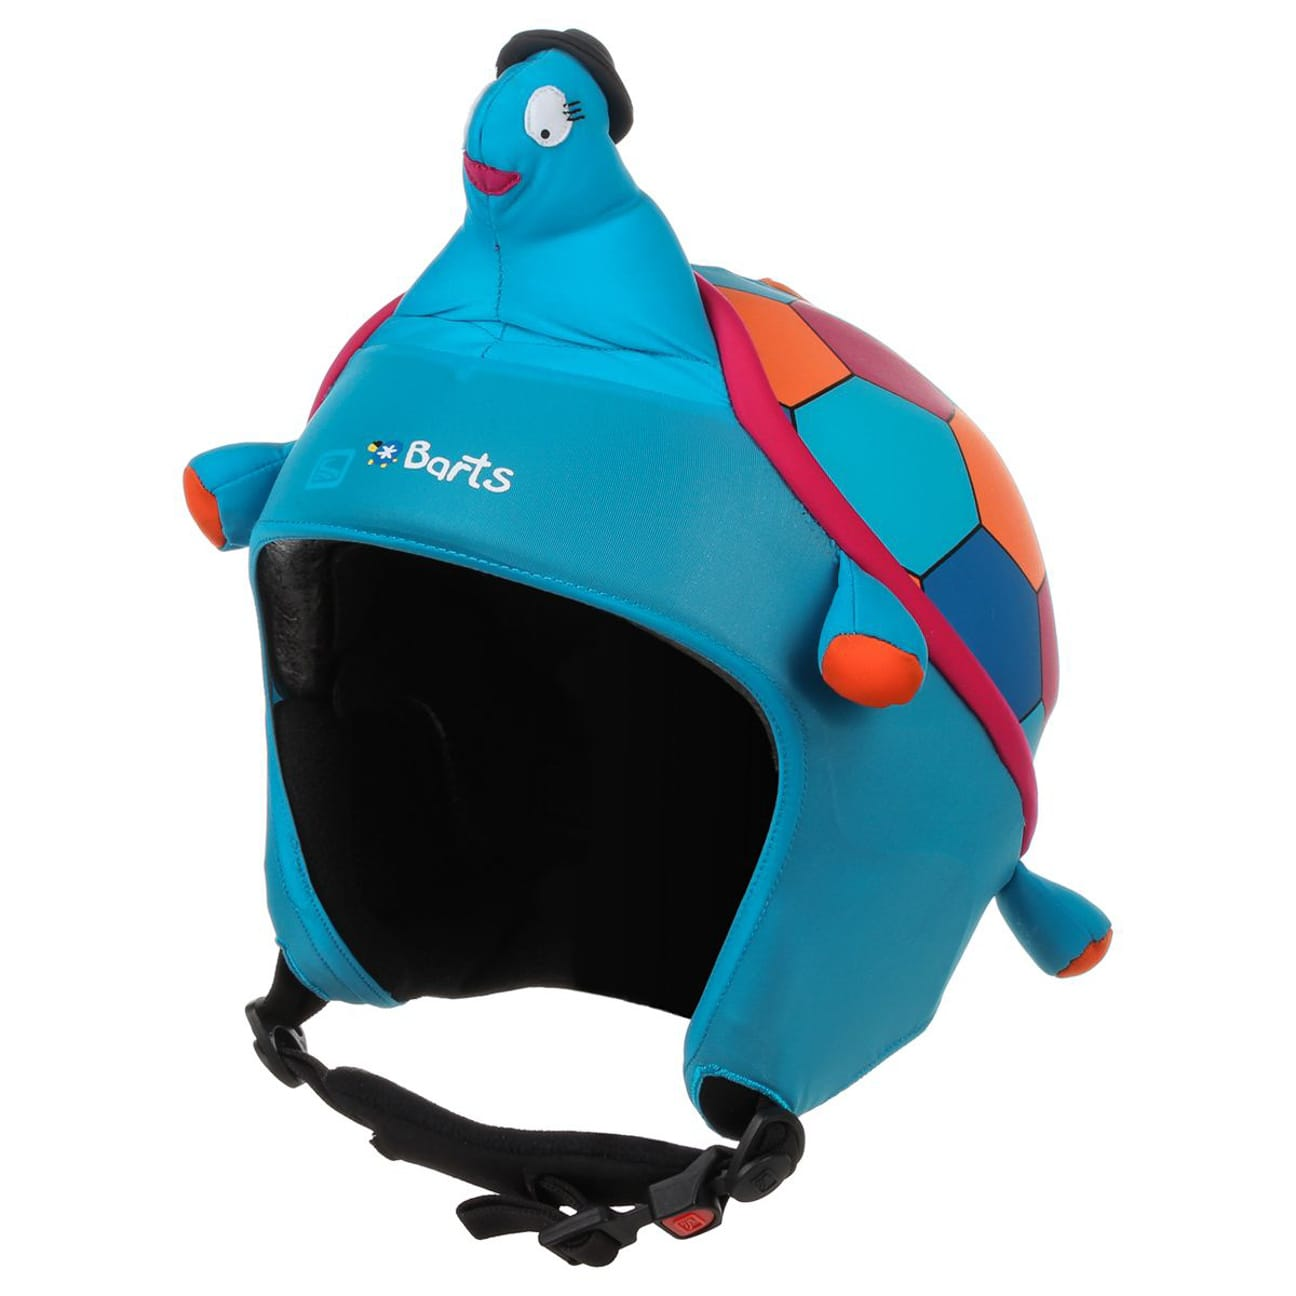 Turtle Ski Helmet Cover By Barts Gbp 22 95 Gt Hats